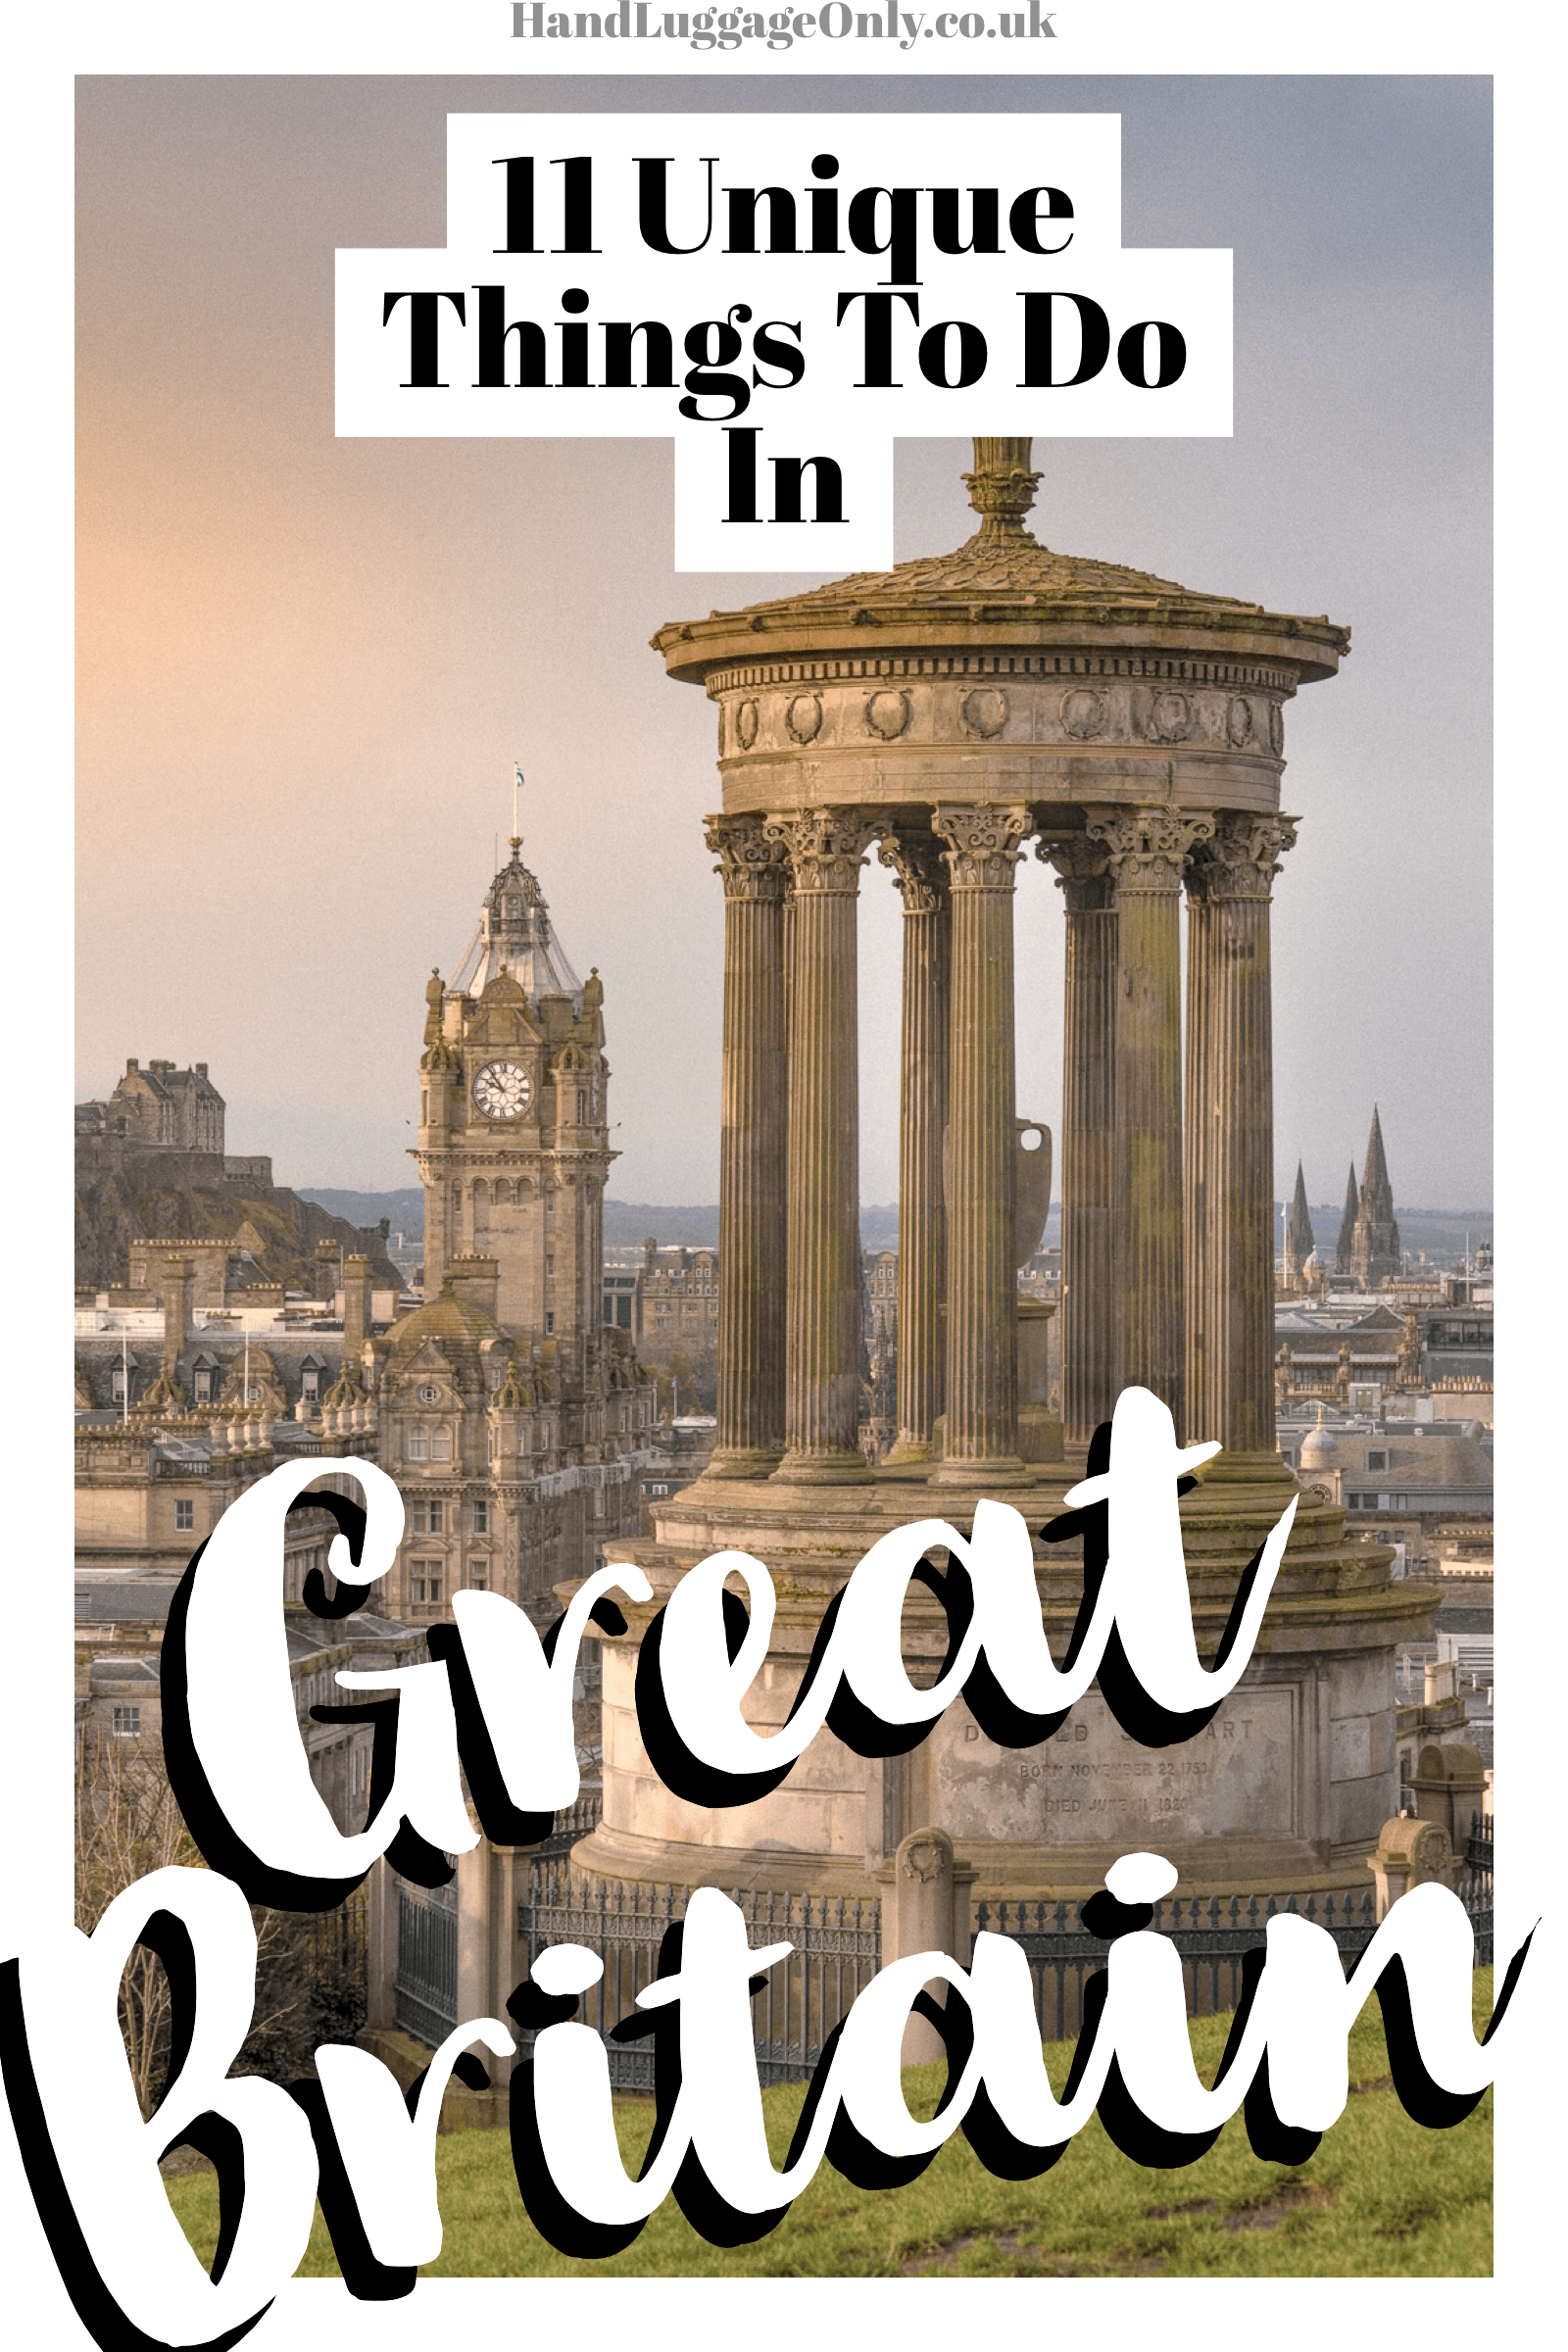 11 Unique Things To See And Do In Great Britain